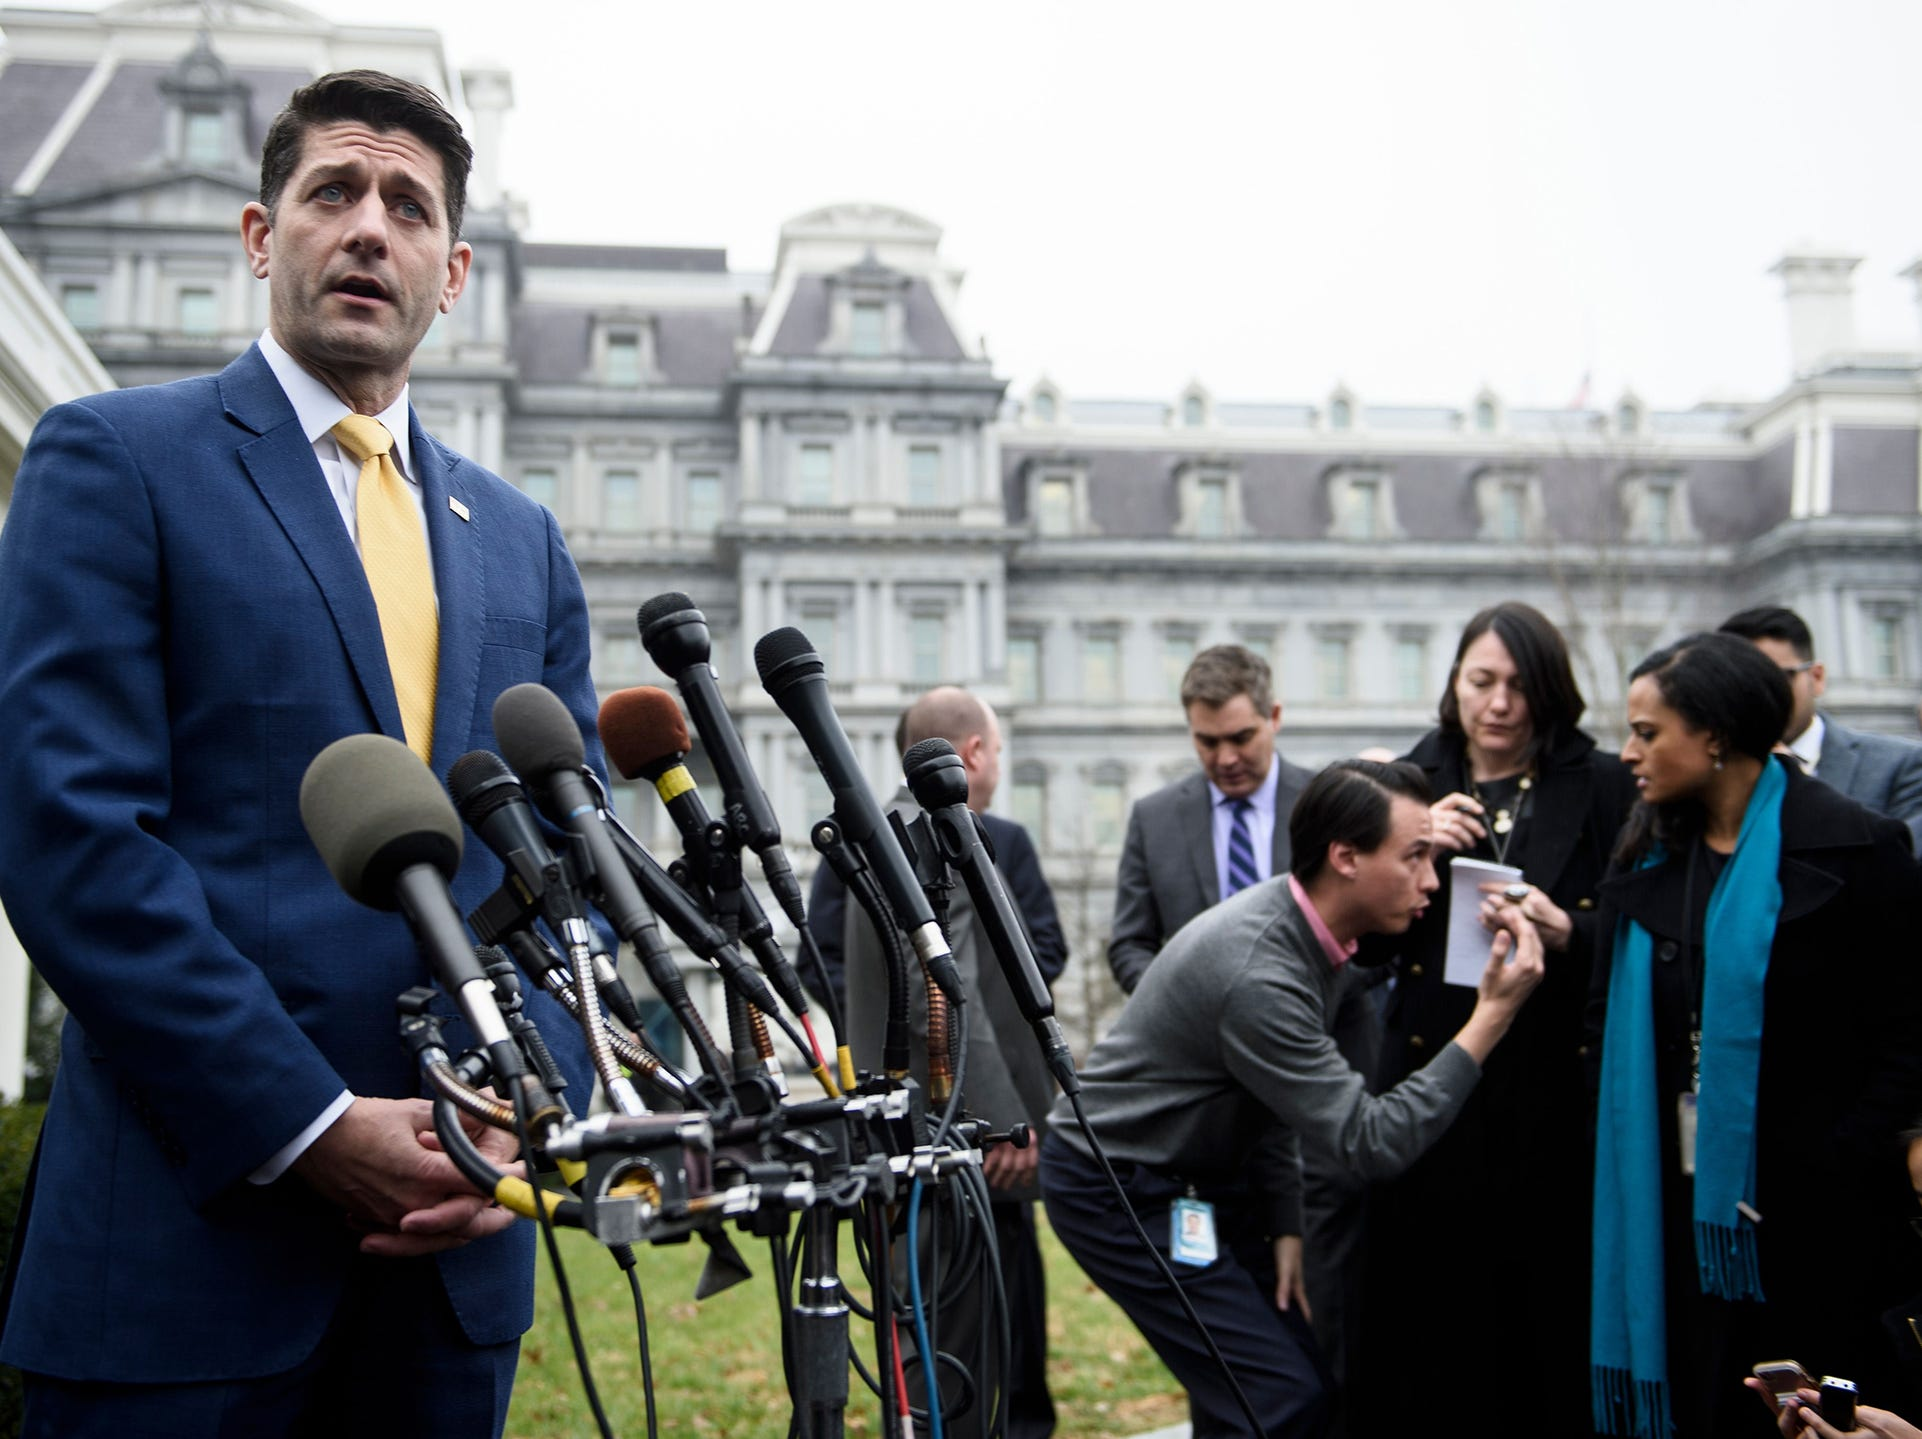 Speaker of the House Paul Ryan (R-WI) makes a statement to the press after a meeting with US President Donald Trump at the White House Thursday.